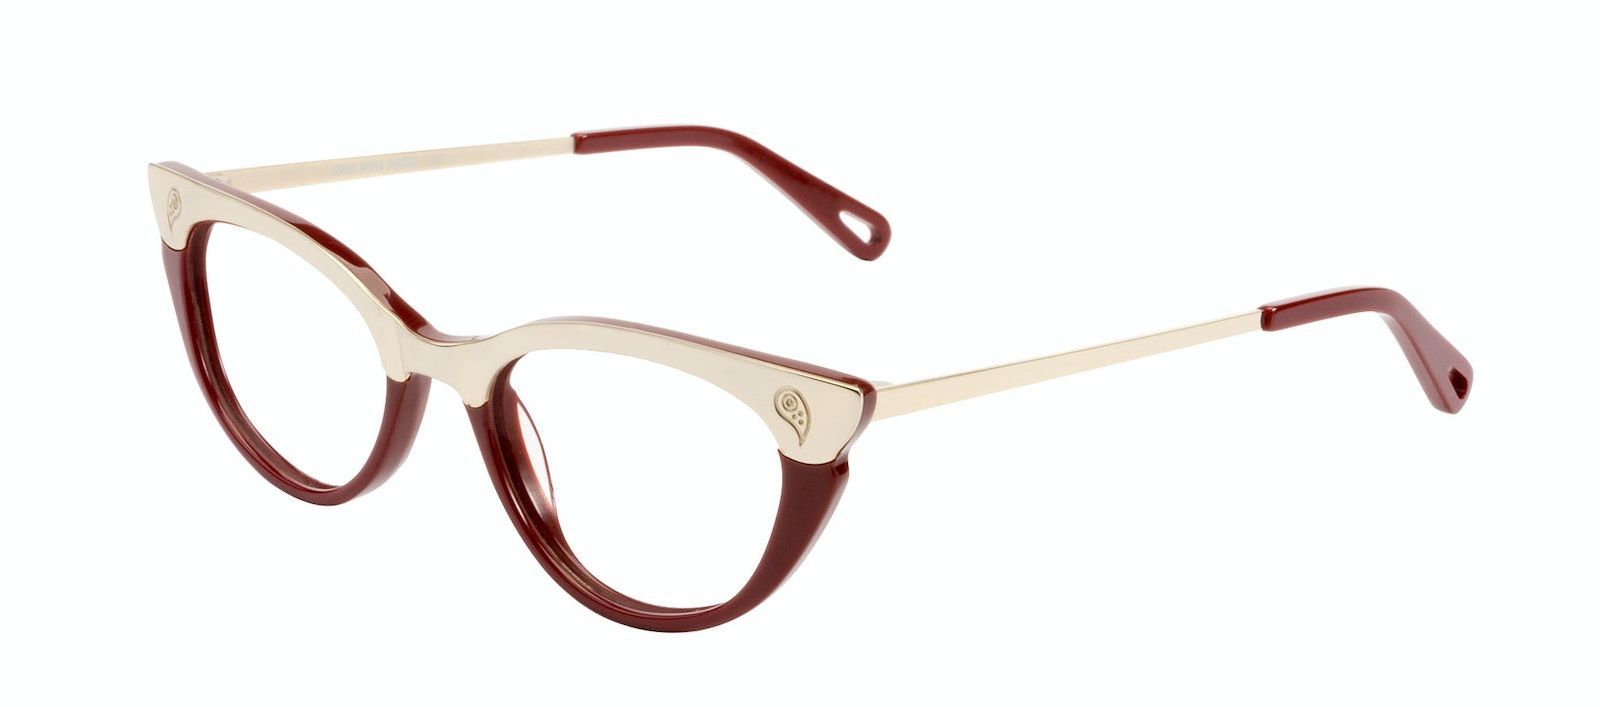 Affordable Fashion Glasses Cat Eye Daring Cateye Eyeglasses Women Bad Beti Paro Tilt